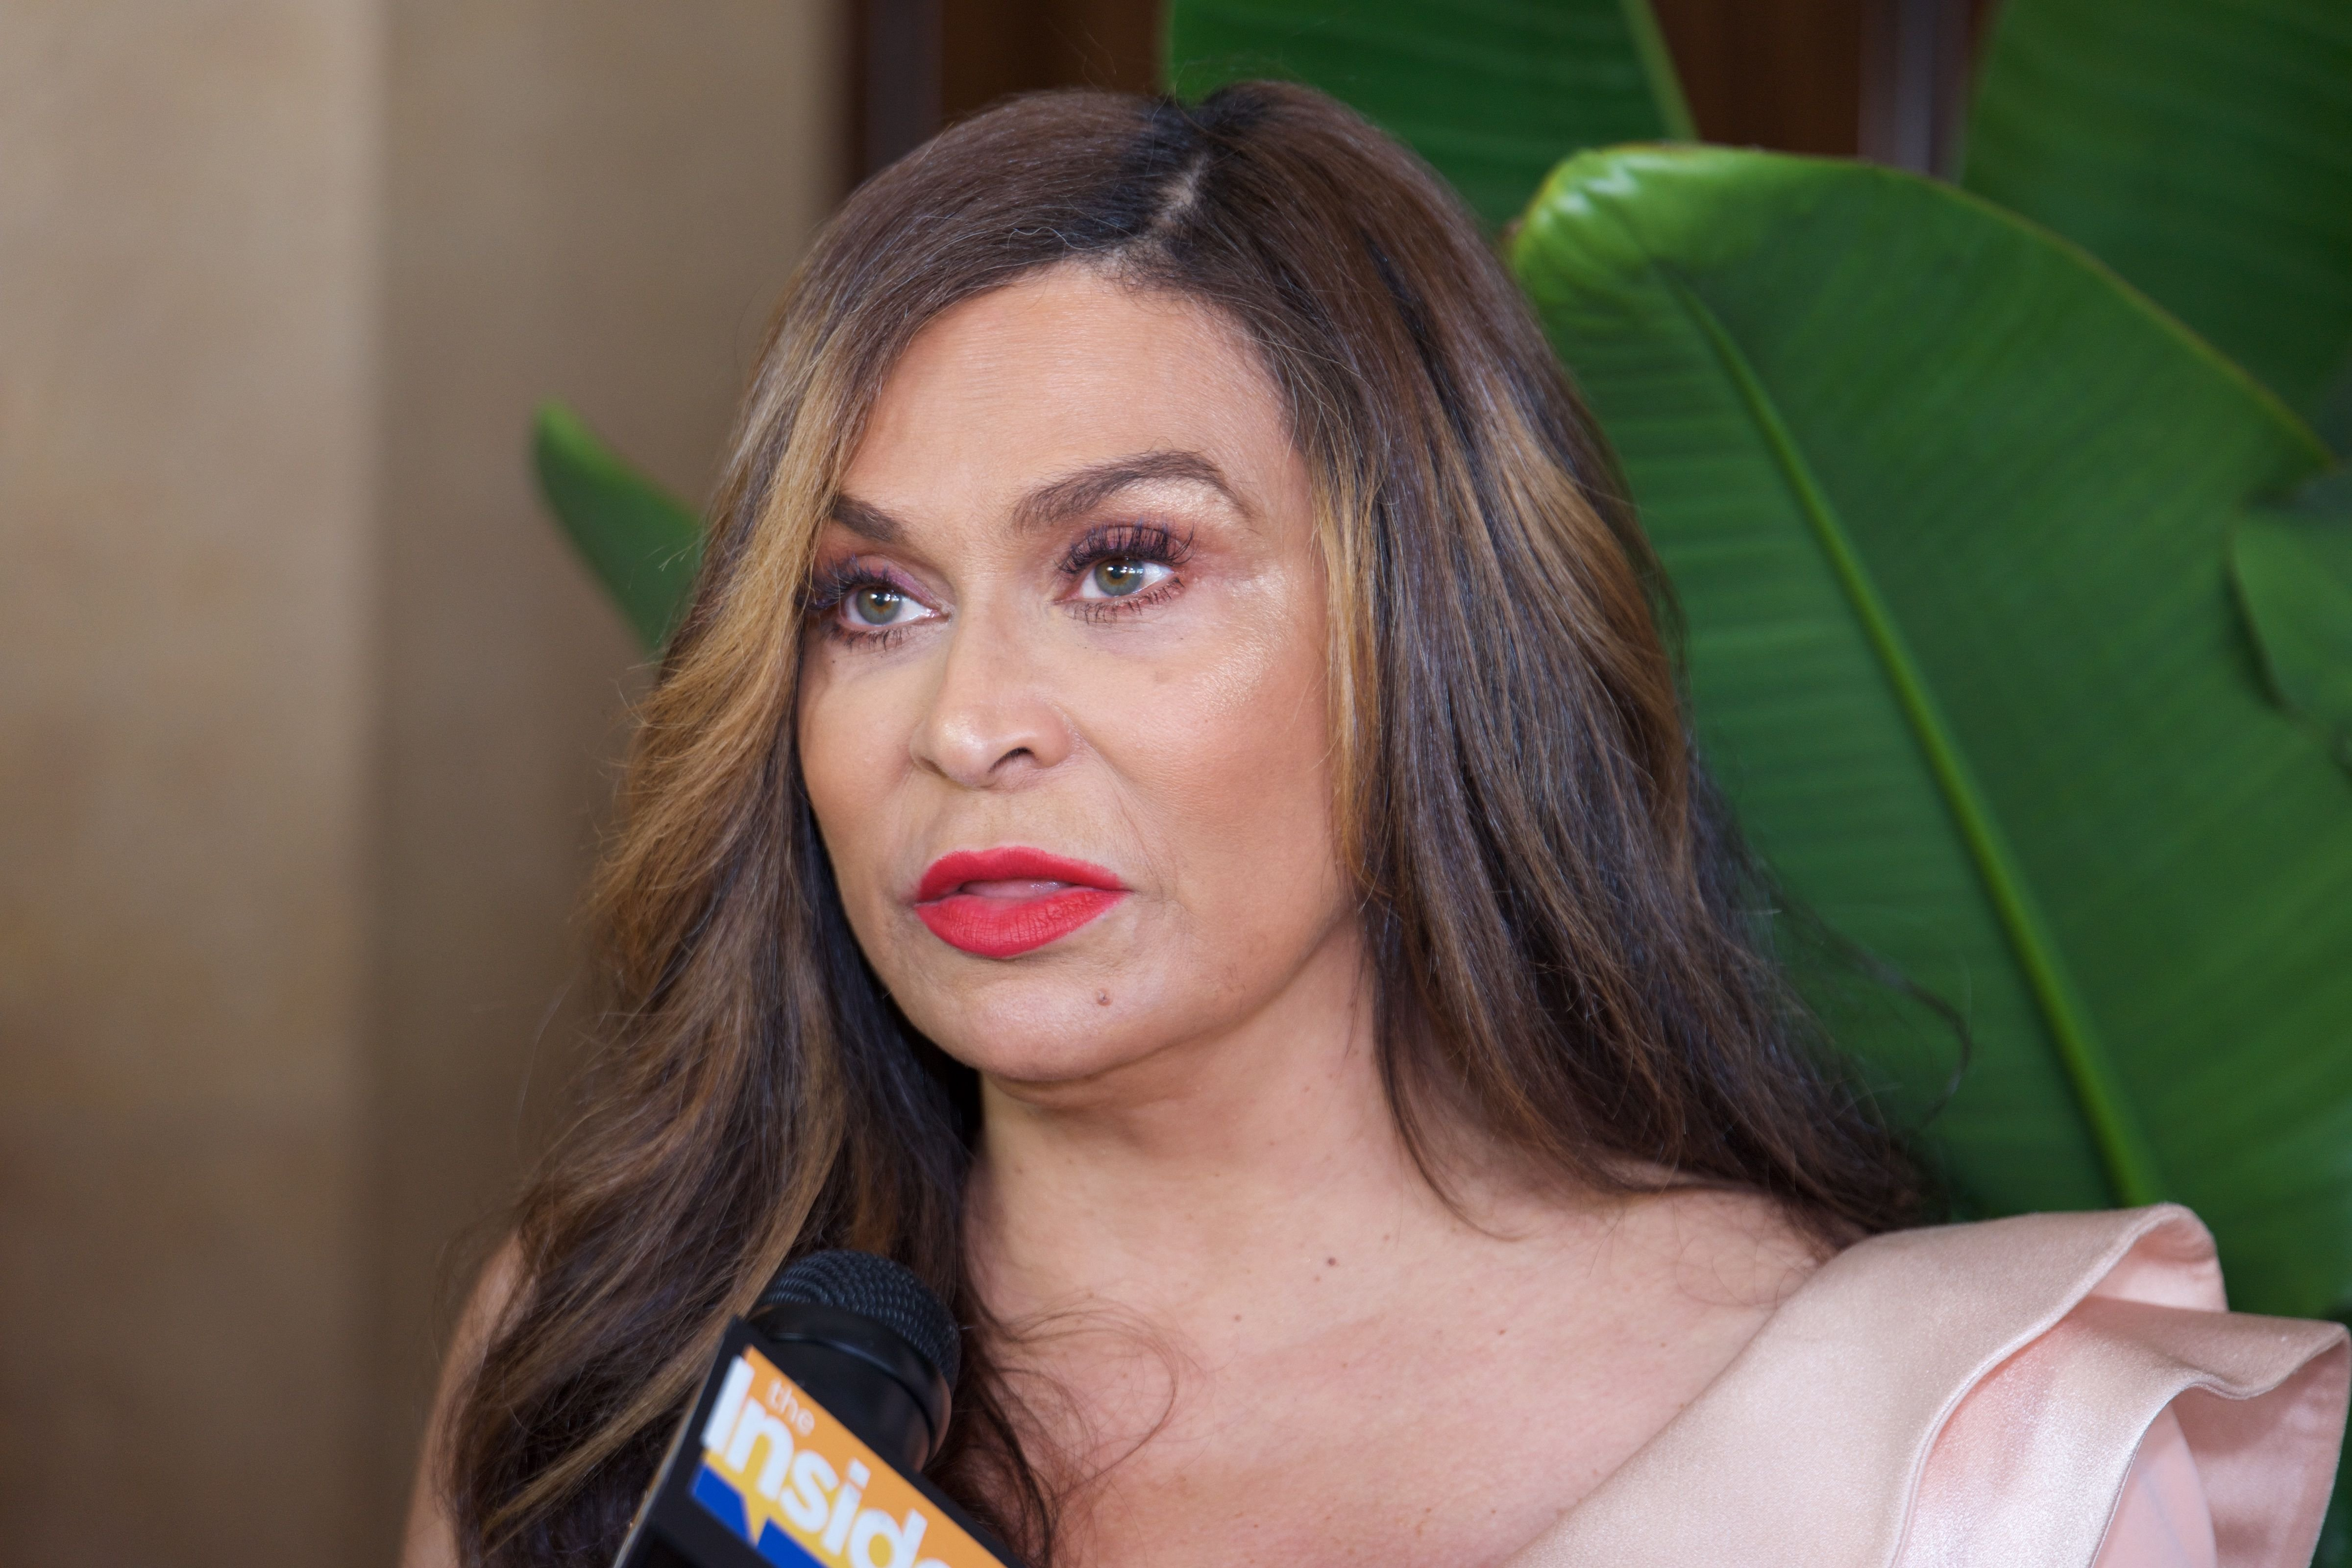 Tina Knowles attends the Ladylike Foundation's 9th Annual Women Of Excellence at The Beverly Hilton Hotel on June 3, 2017 in Beverly Hills, California. | Source: Getty Images